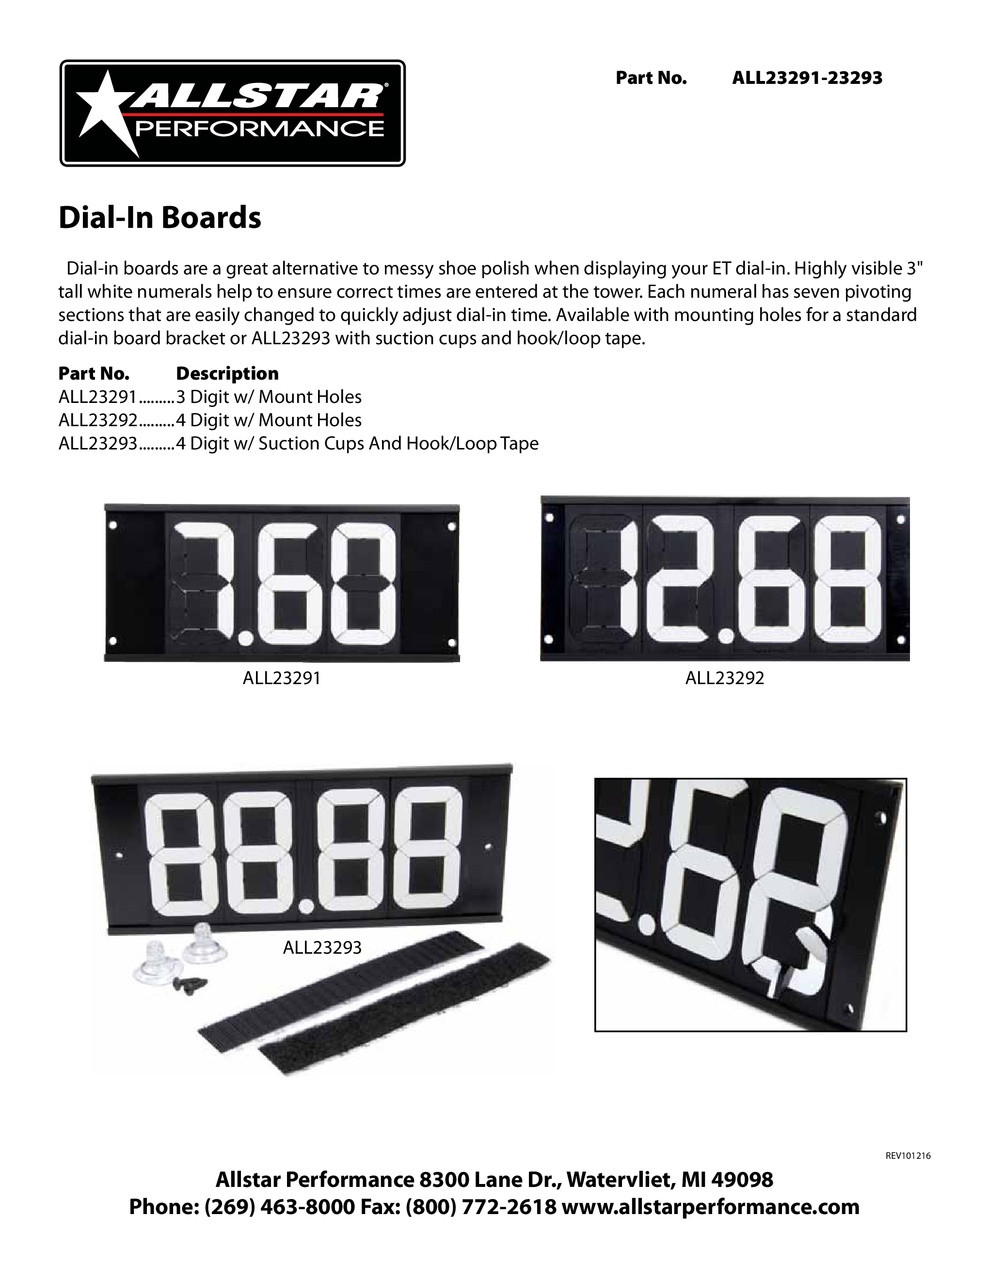 Allstar Performance Dial-In Board 4 Digit with Mounting Holes ALL23292